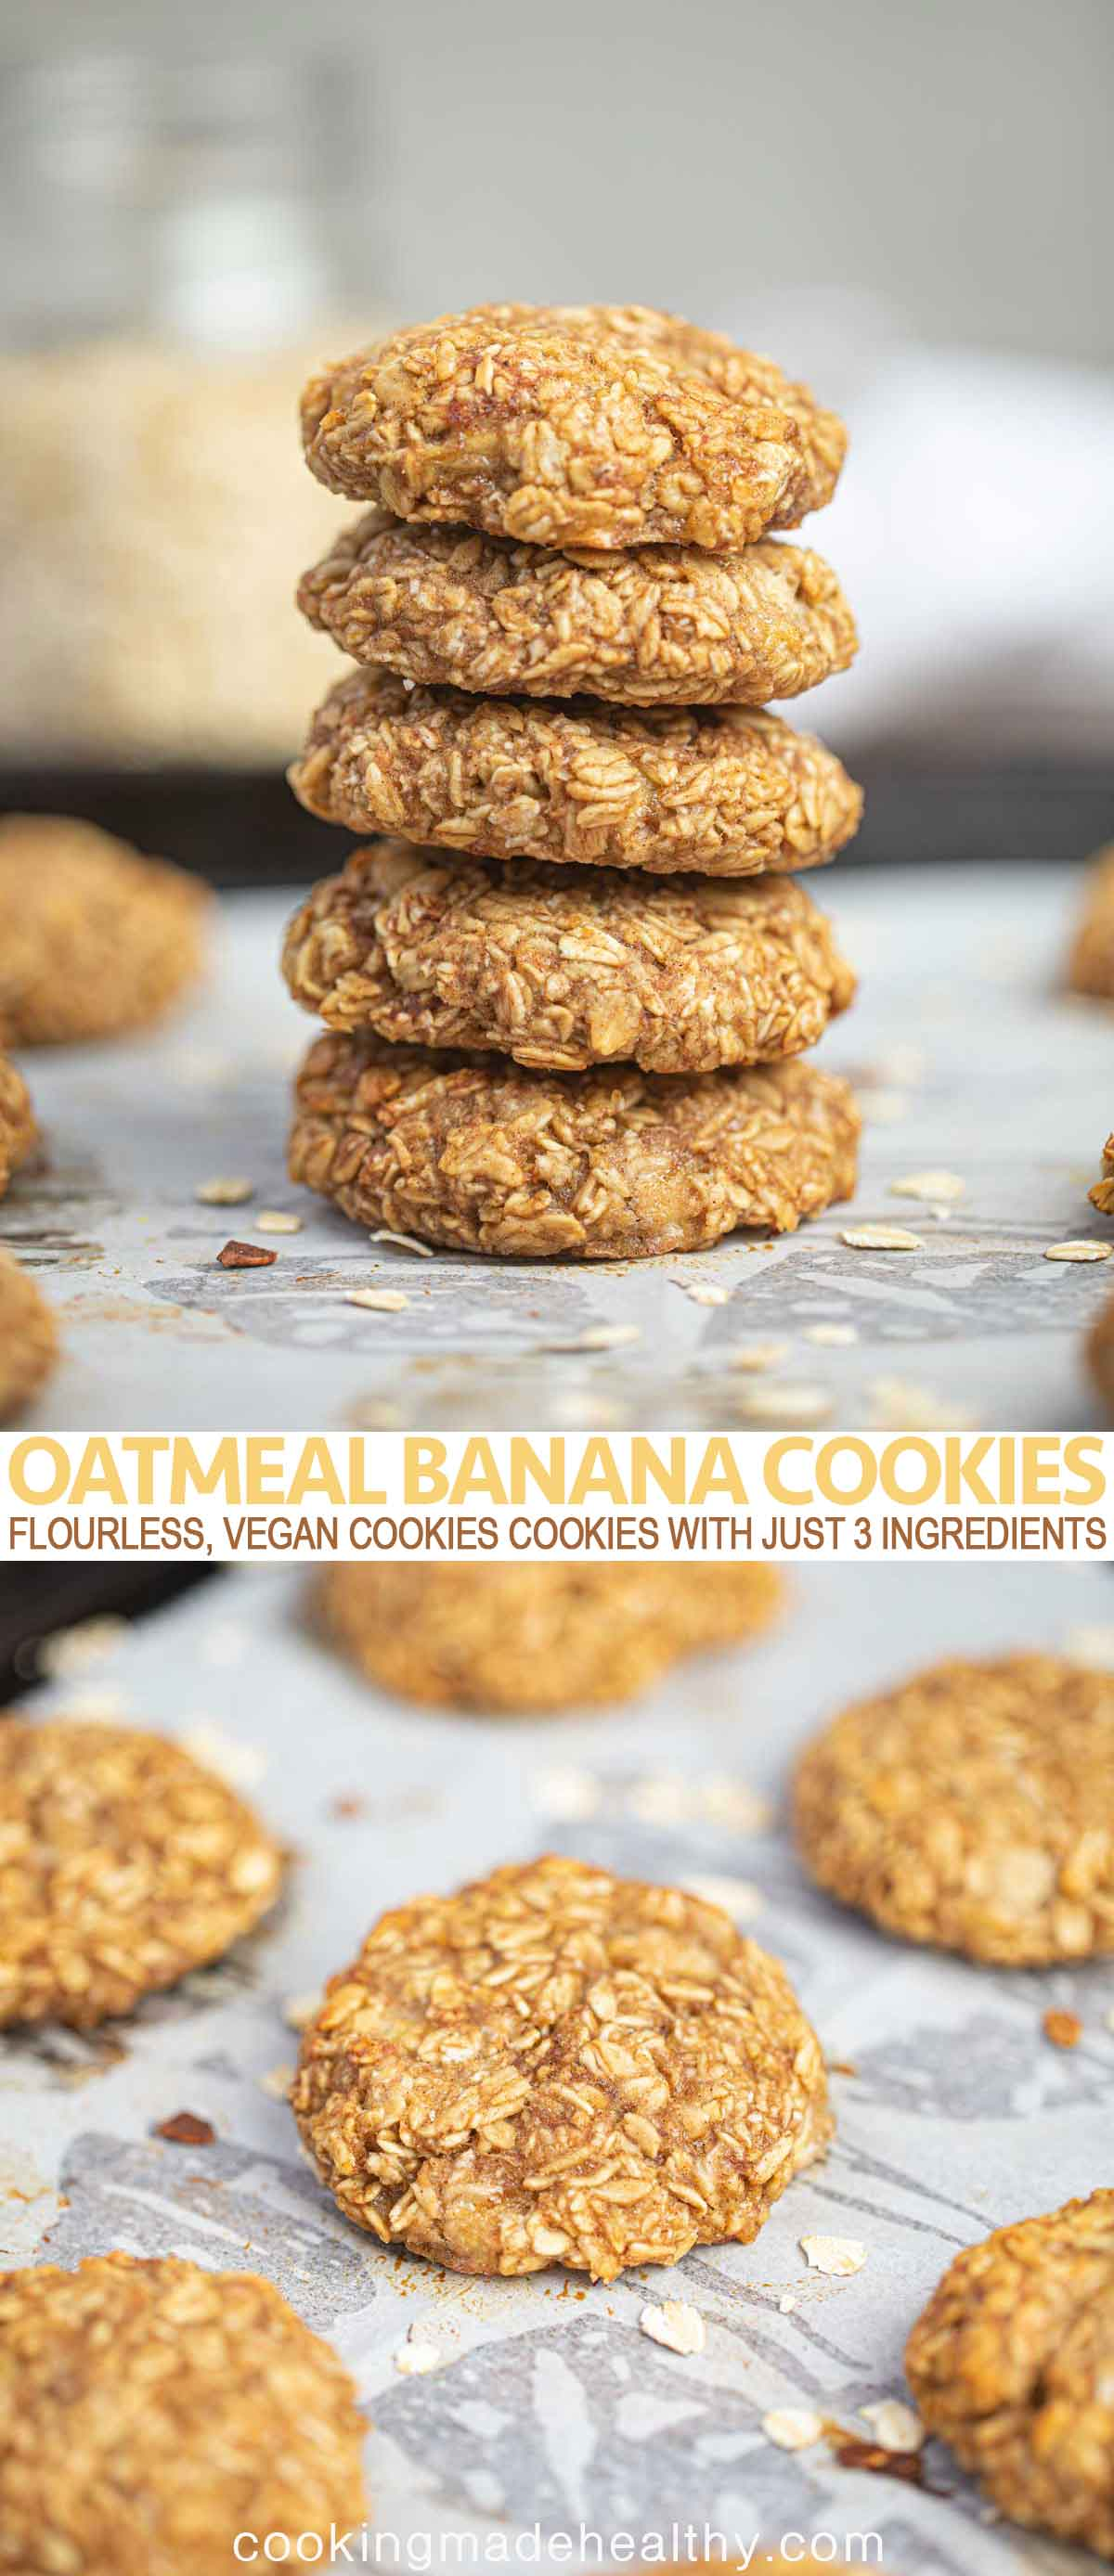 Oatmeal Banana Cookies (3 Ingredients!) - Cooking Made Healthy